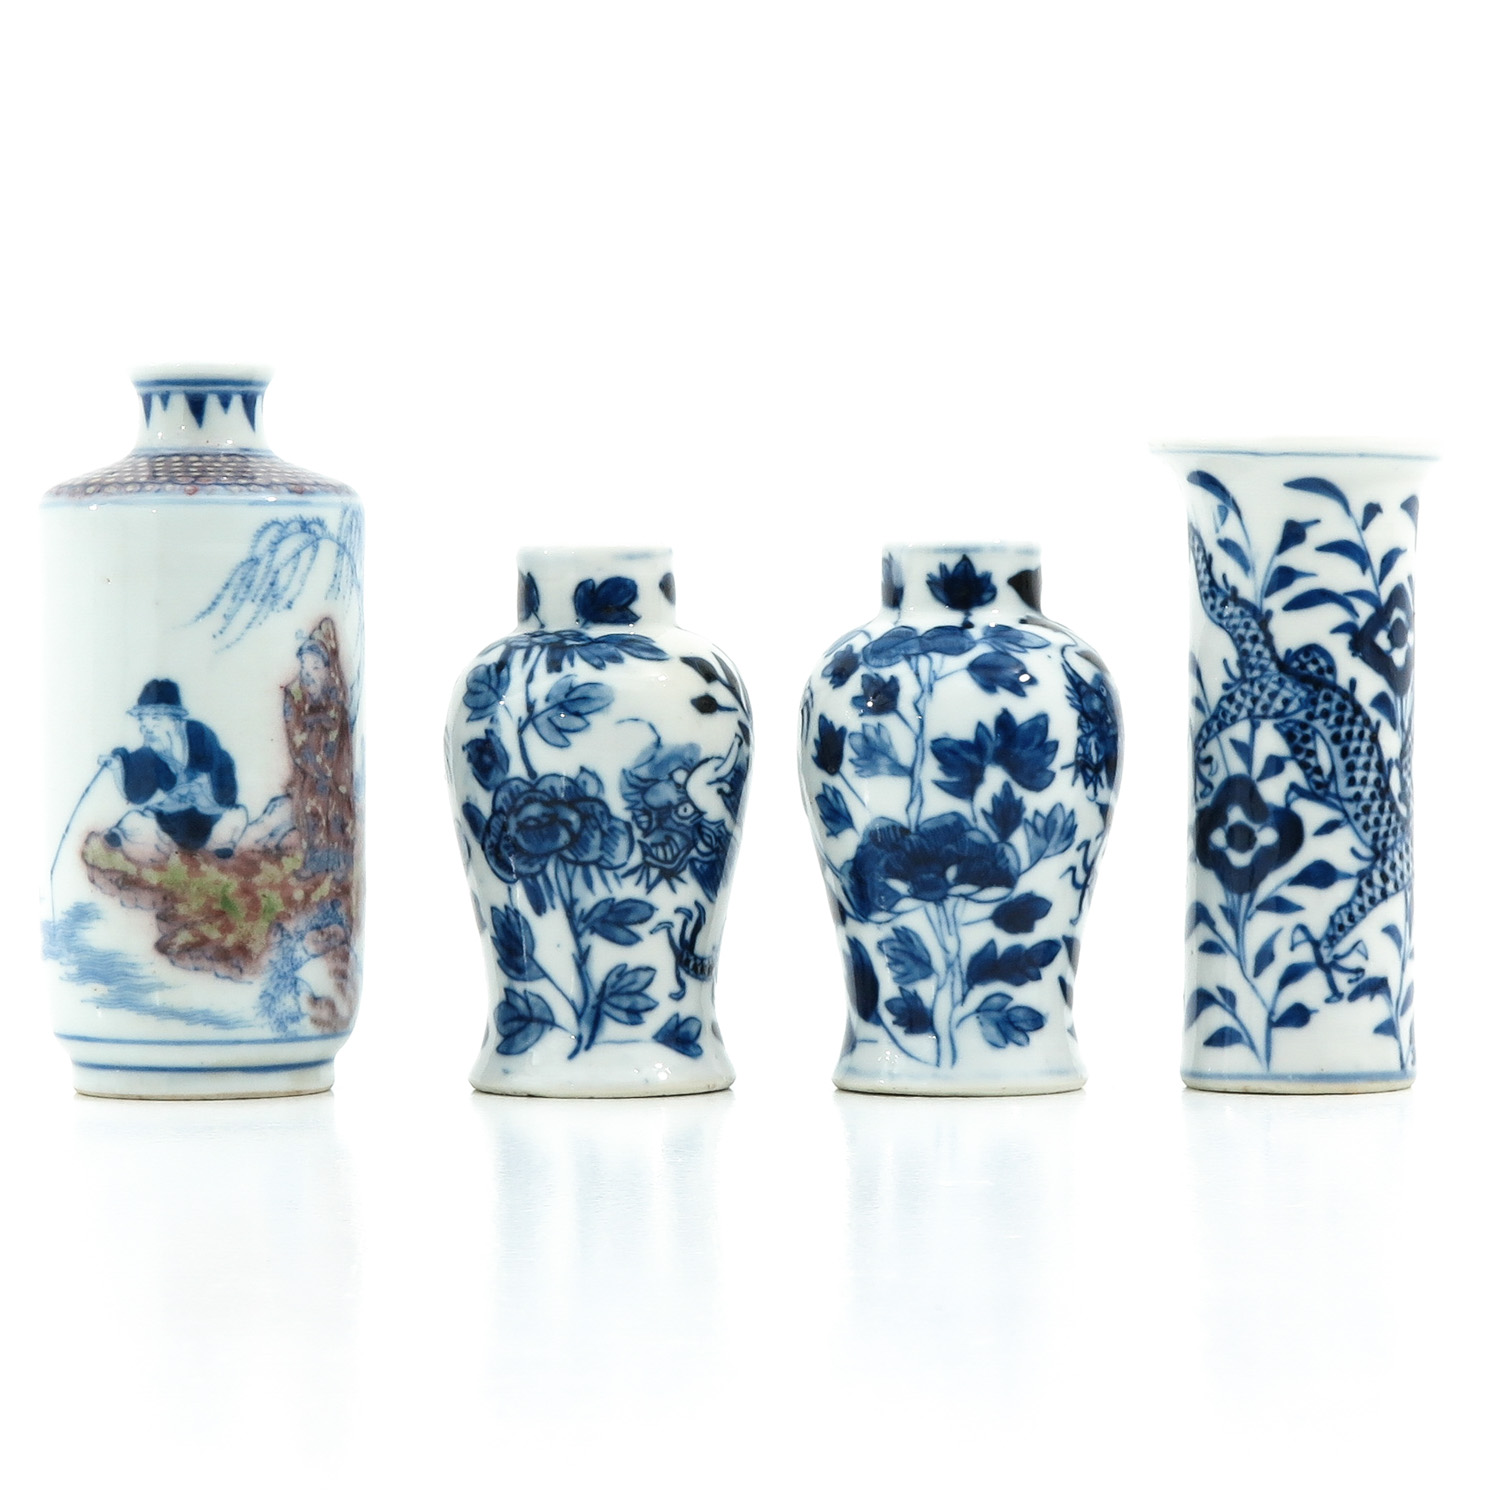 A Collection of 4 Miniature Vases - Image 4 of 10